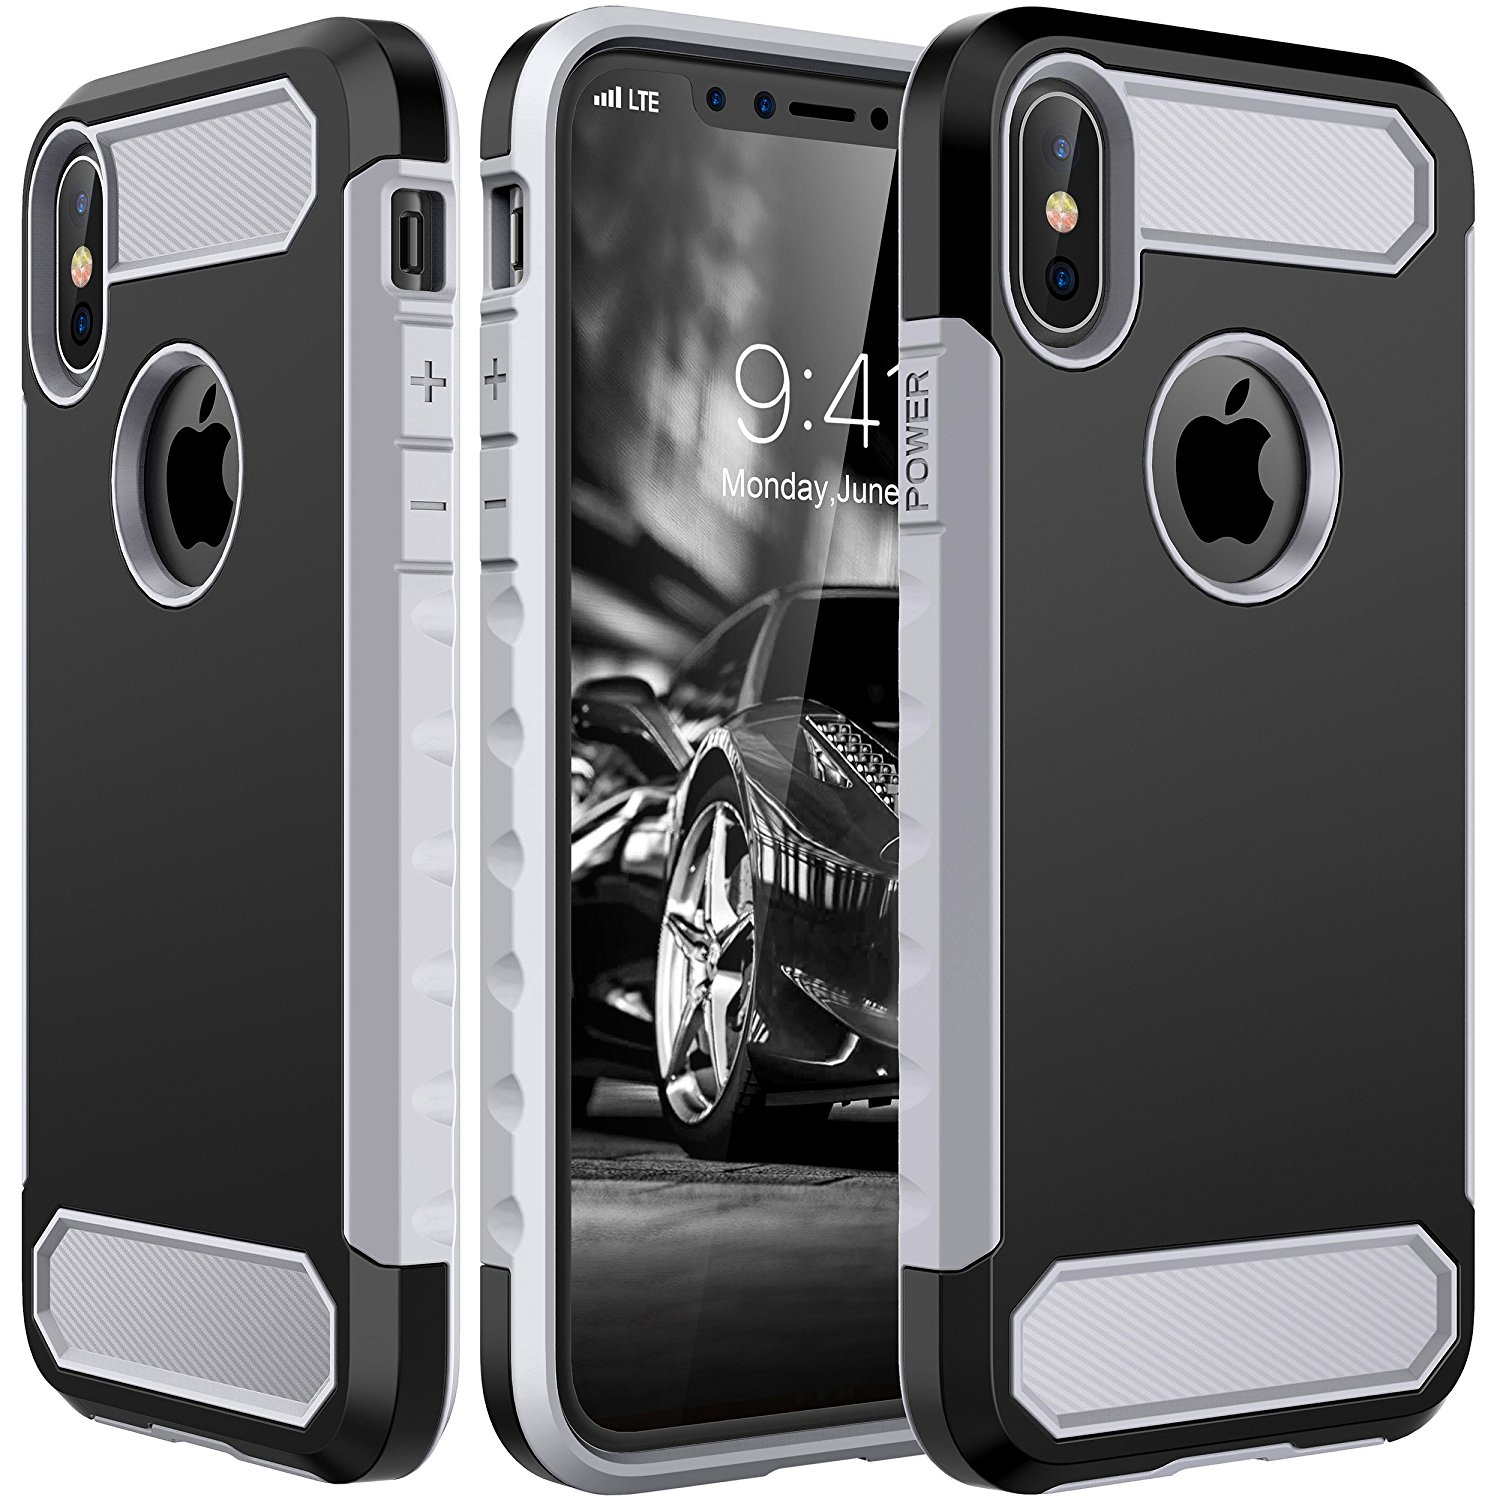 iPhone X Case, E LV iPhone X Defender Case - Hybrid Shock-Absorption Full Body Protective Case Cover for Apple iPhone X - BLACK